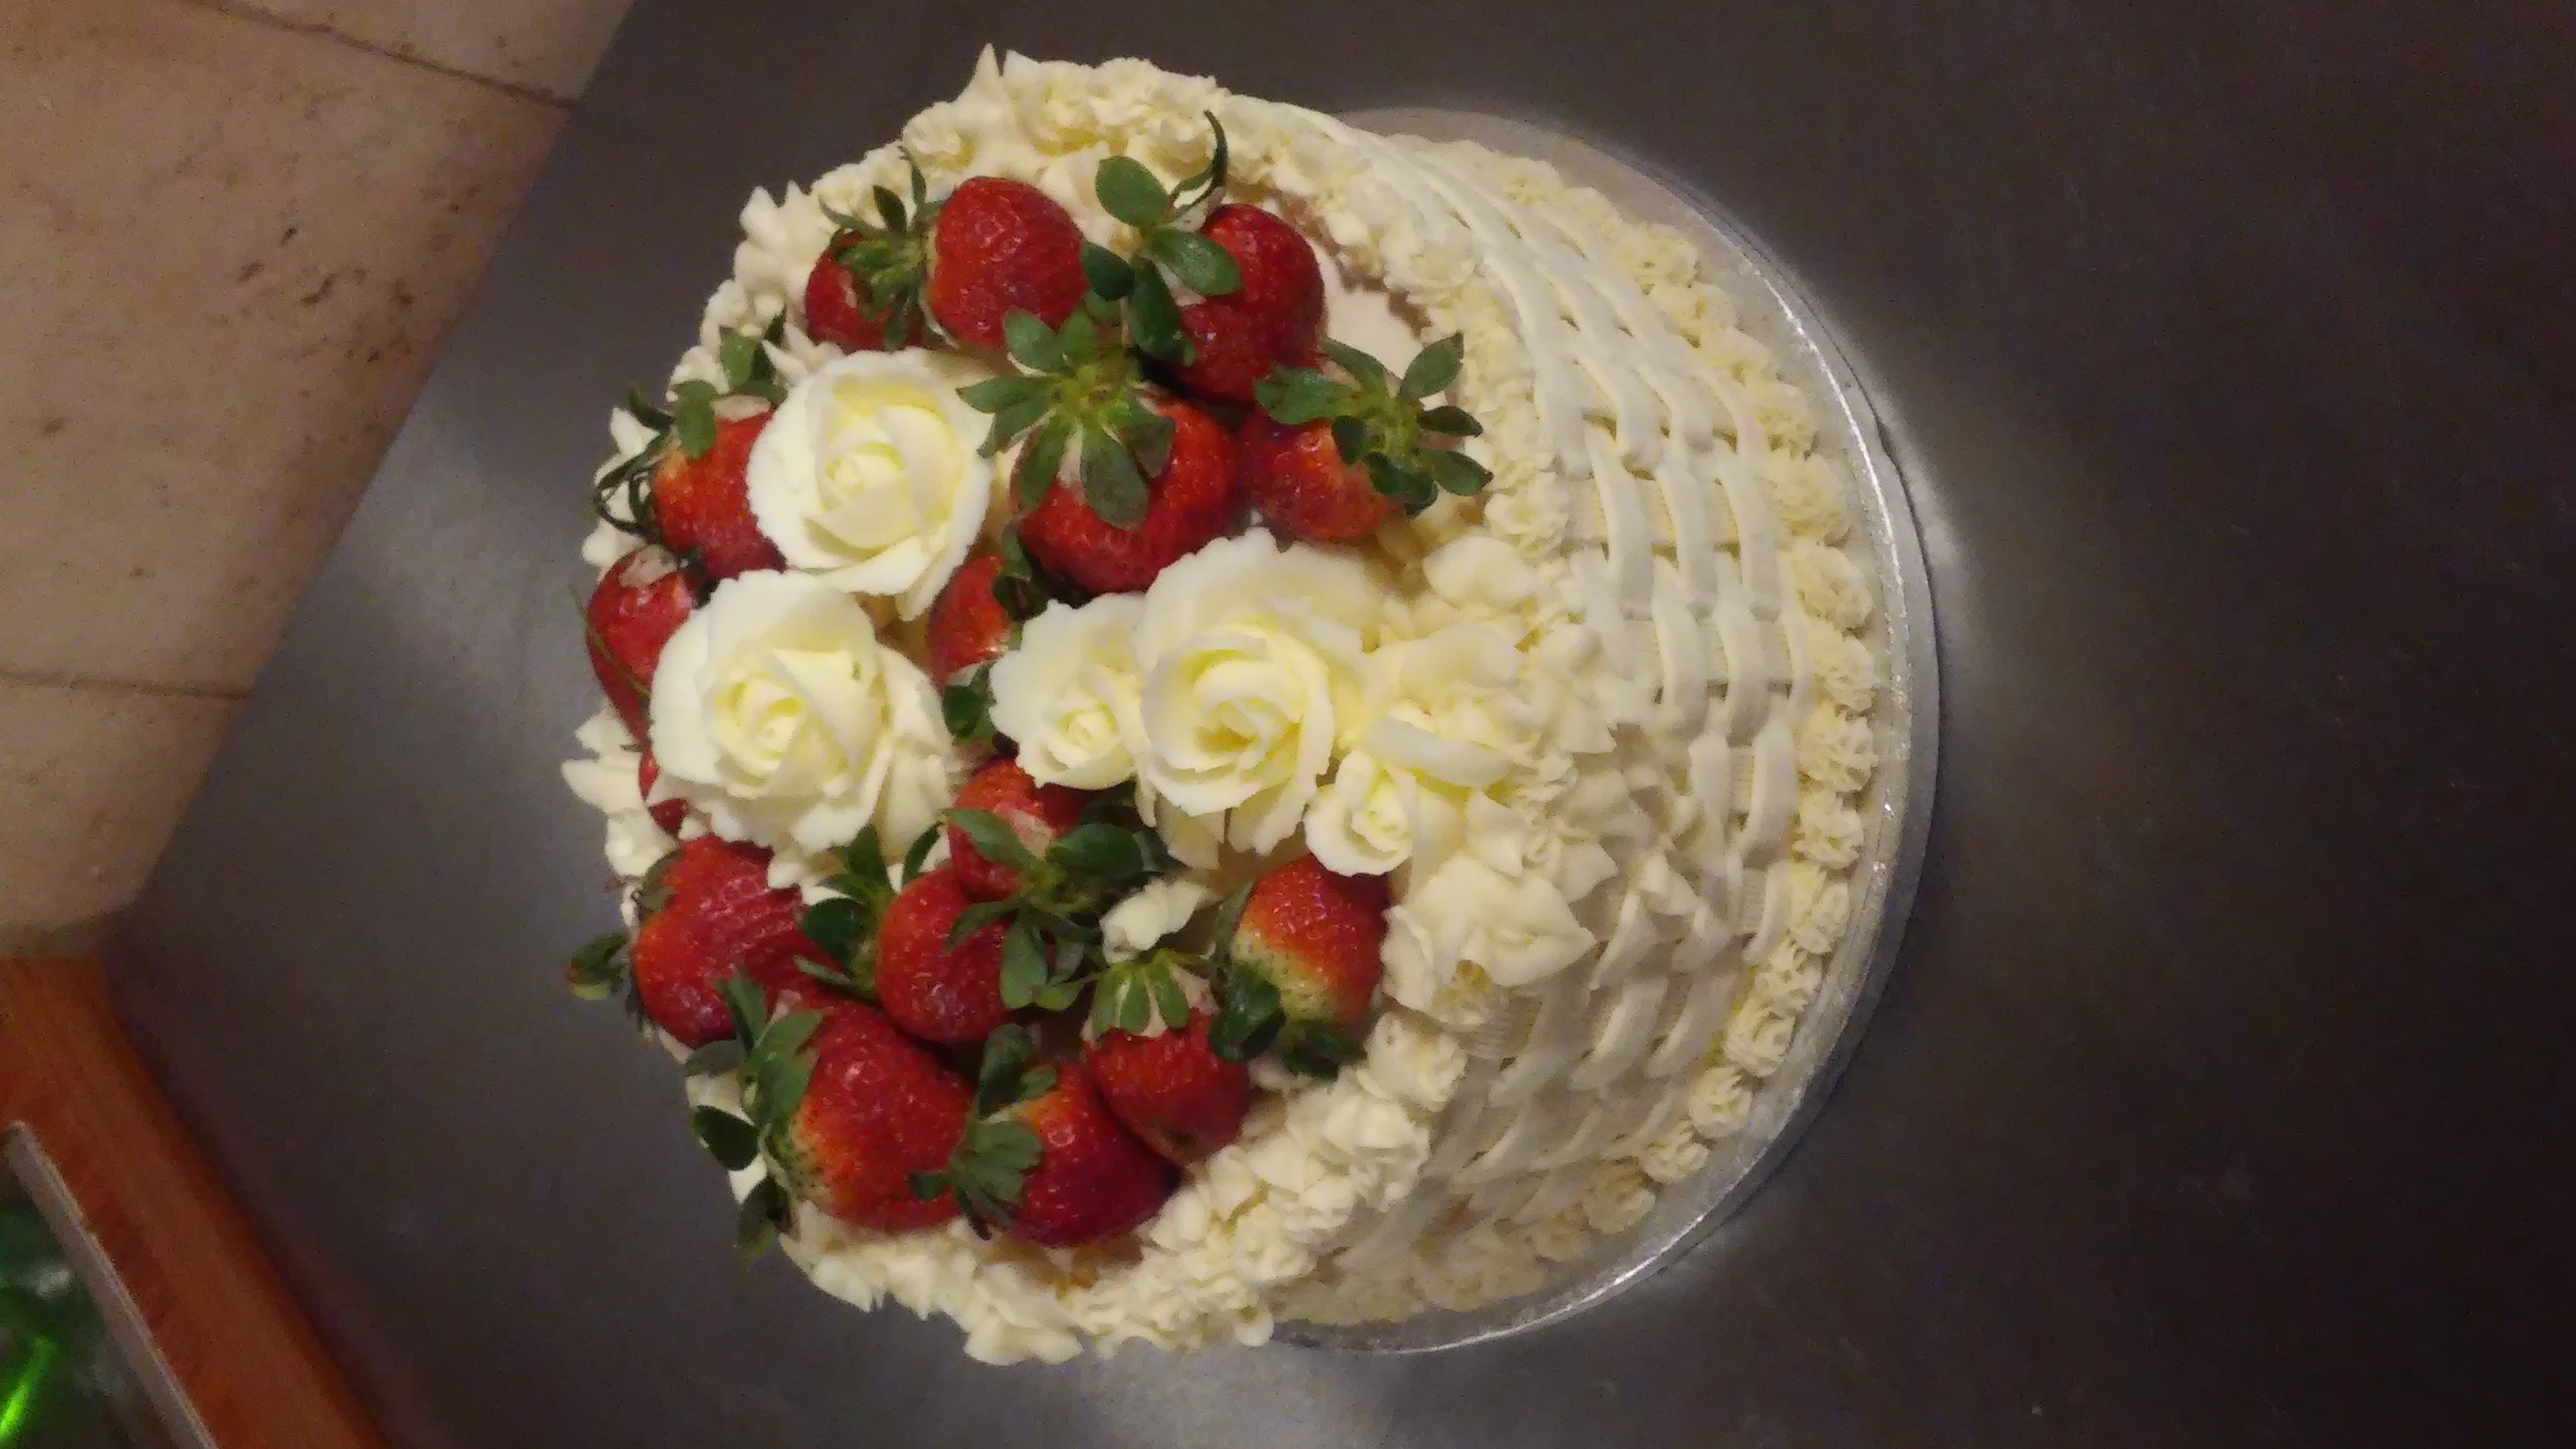 Strawberry Lattice Cake